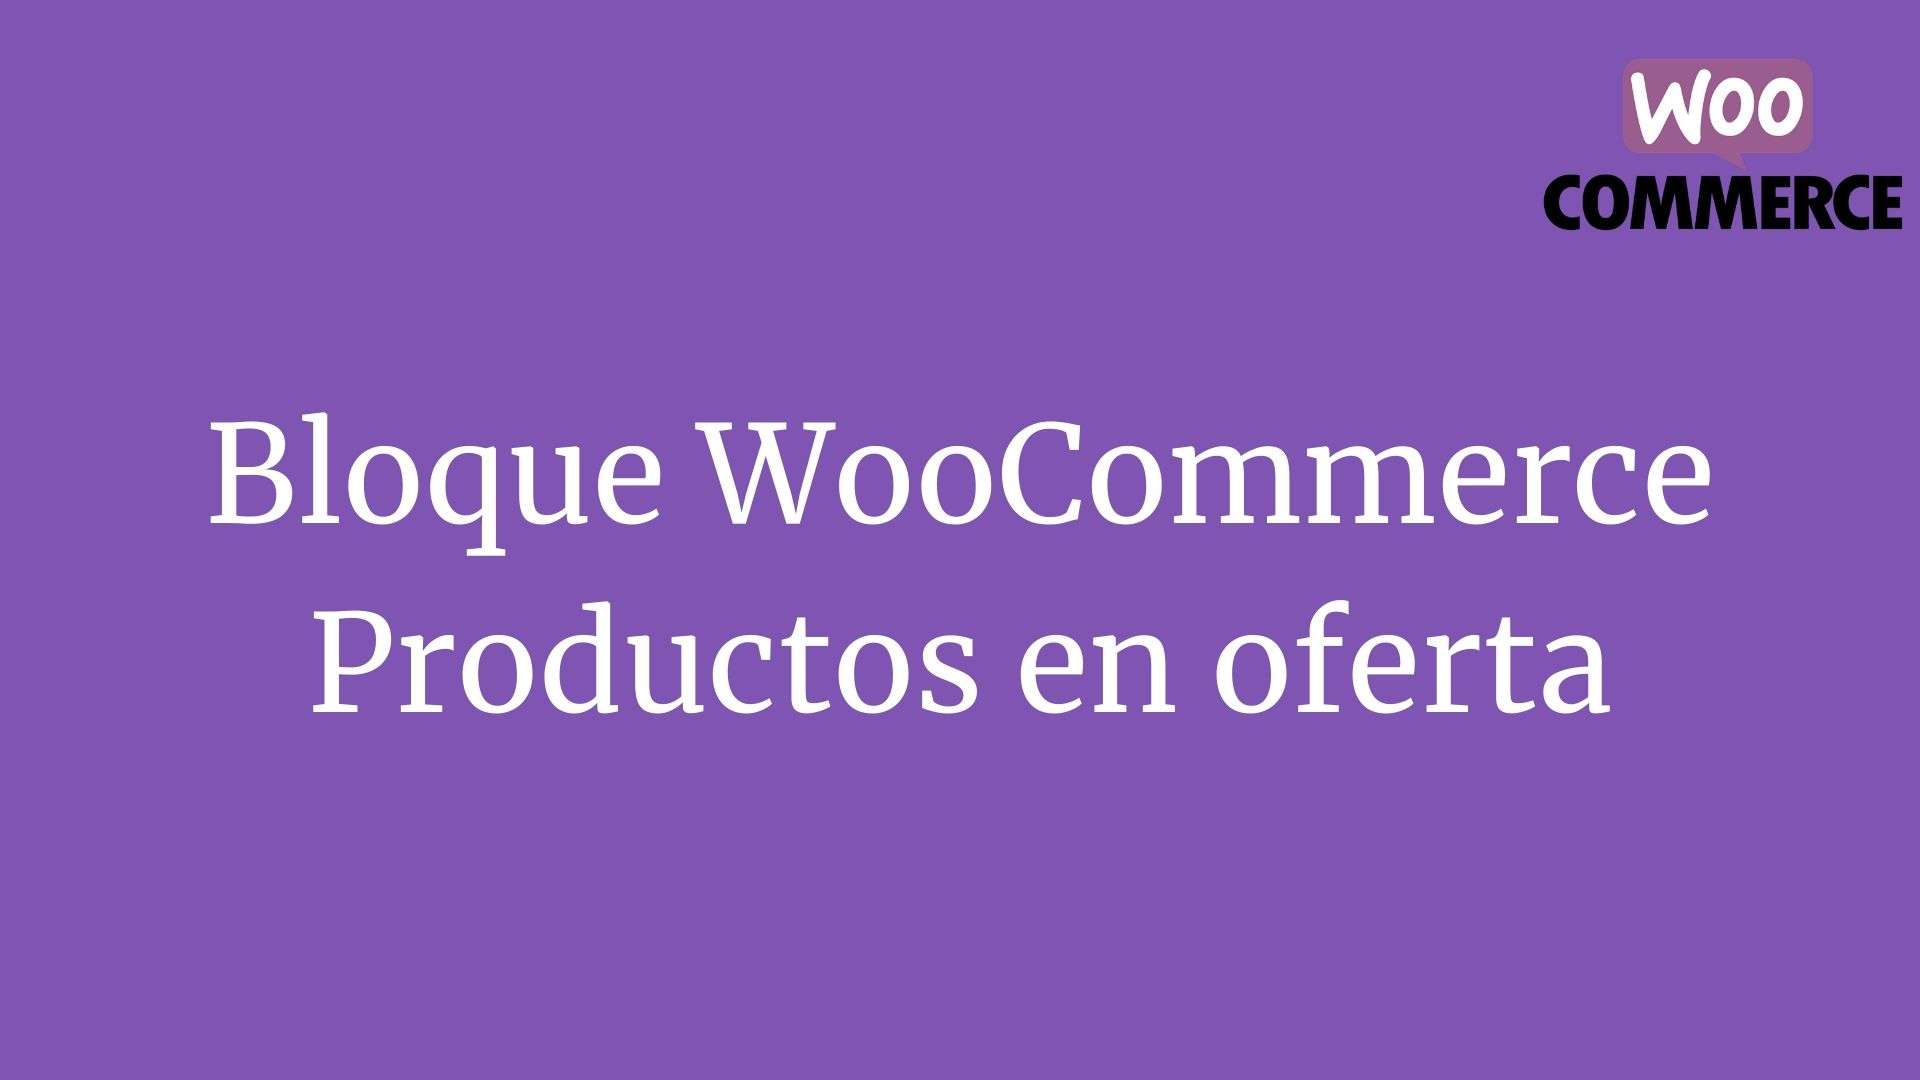 Bloque WooCommerce: Productos en oferta